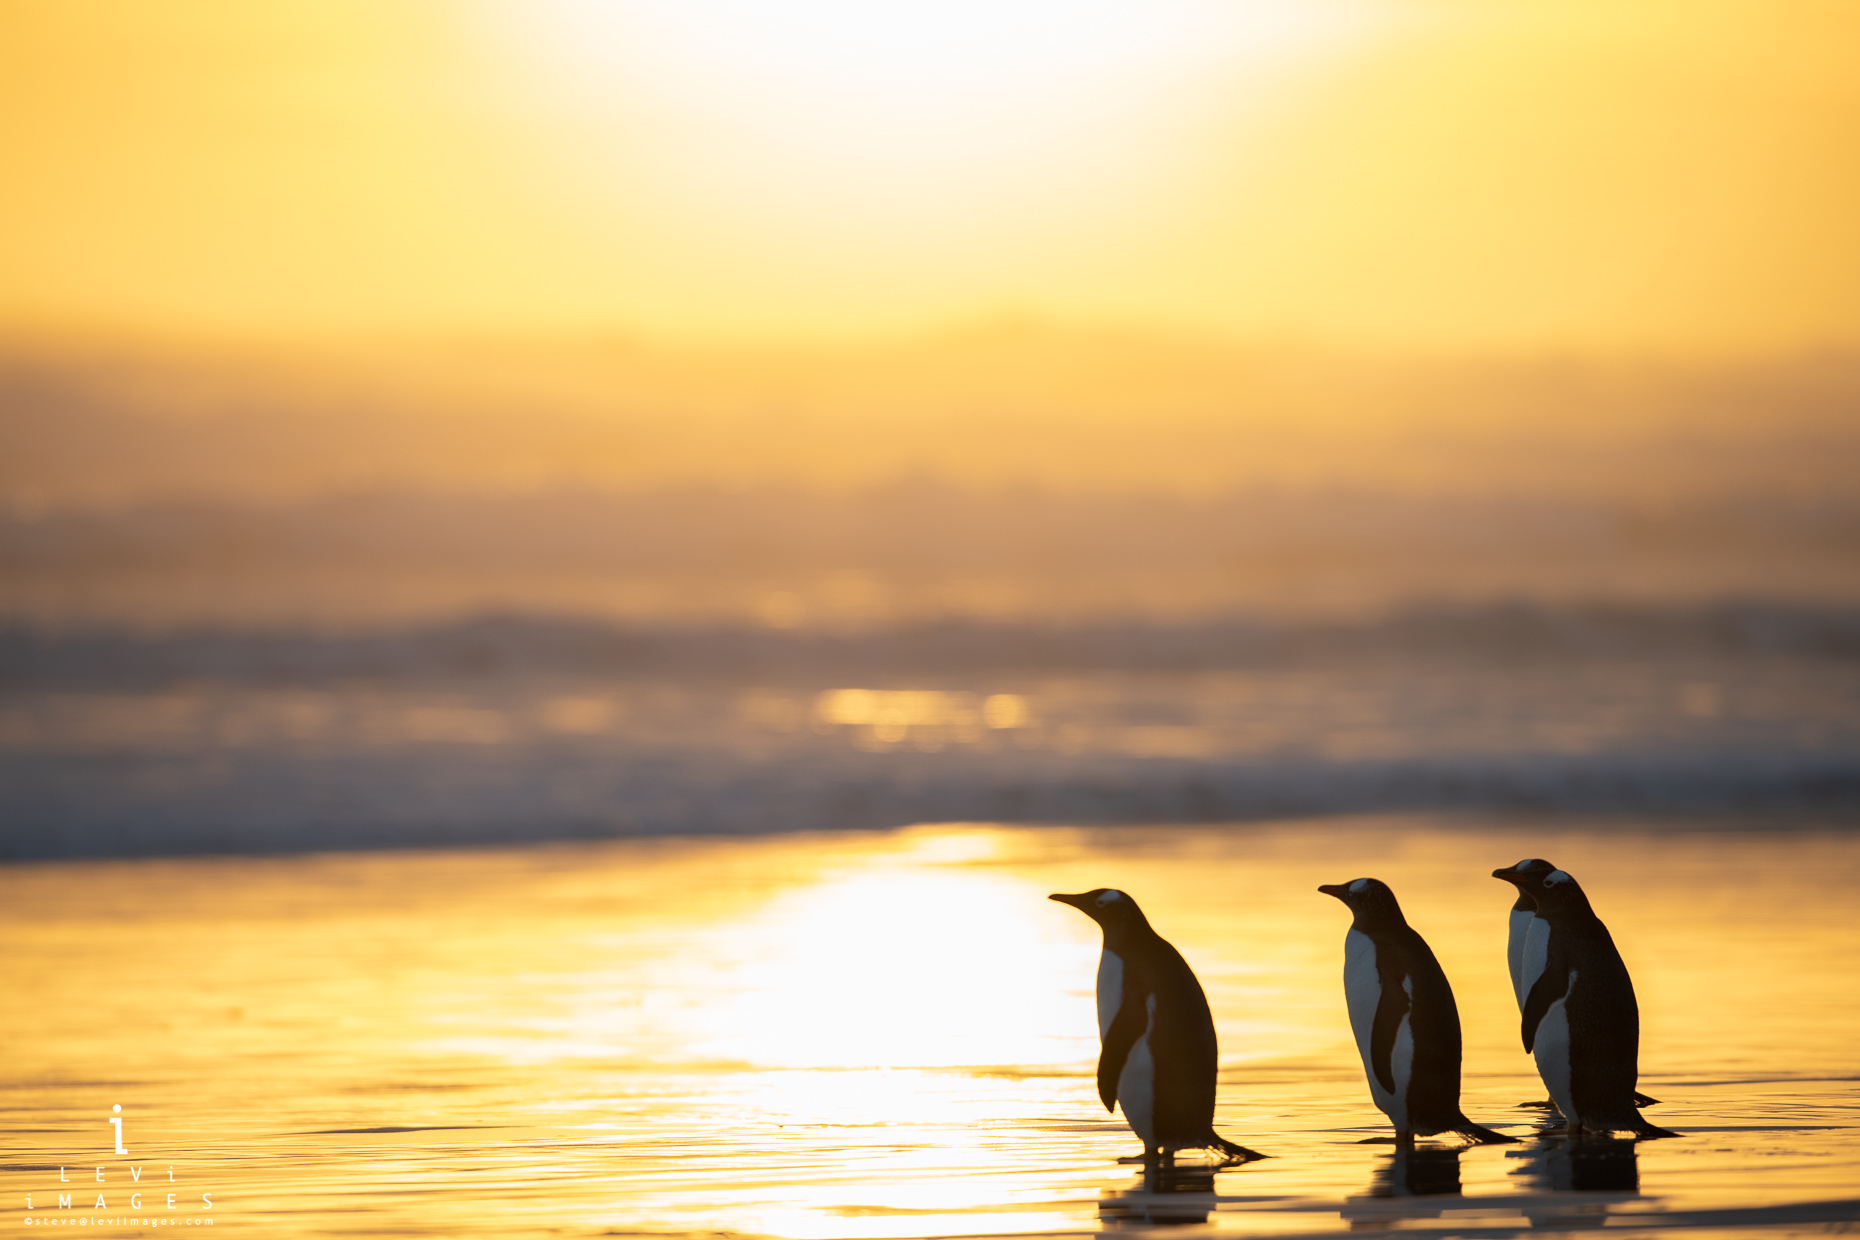 Gentoo penguins (Pygoscelis papua) at beach bathed in sunset light. Volunteer Point, Falkland Islands